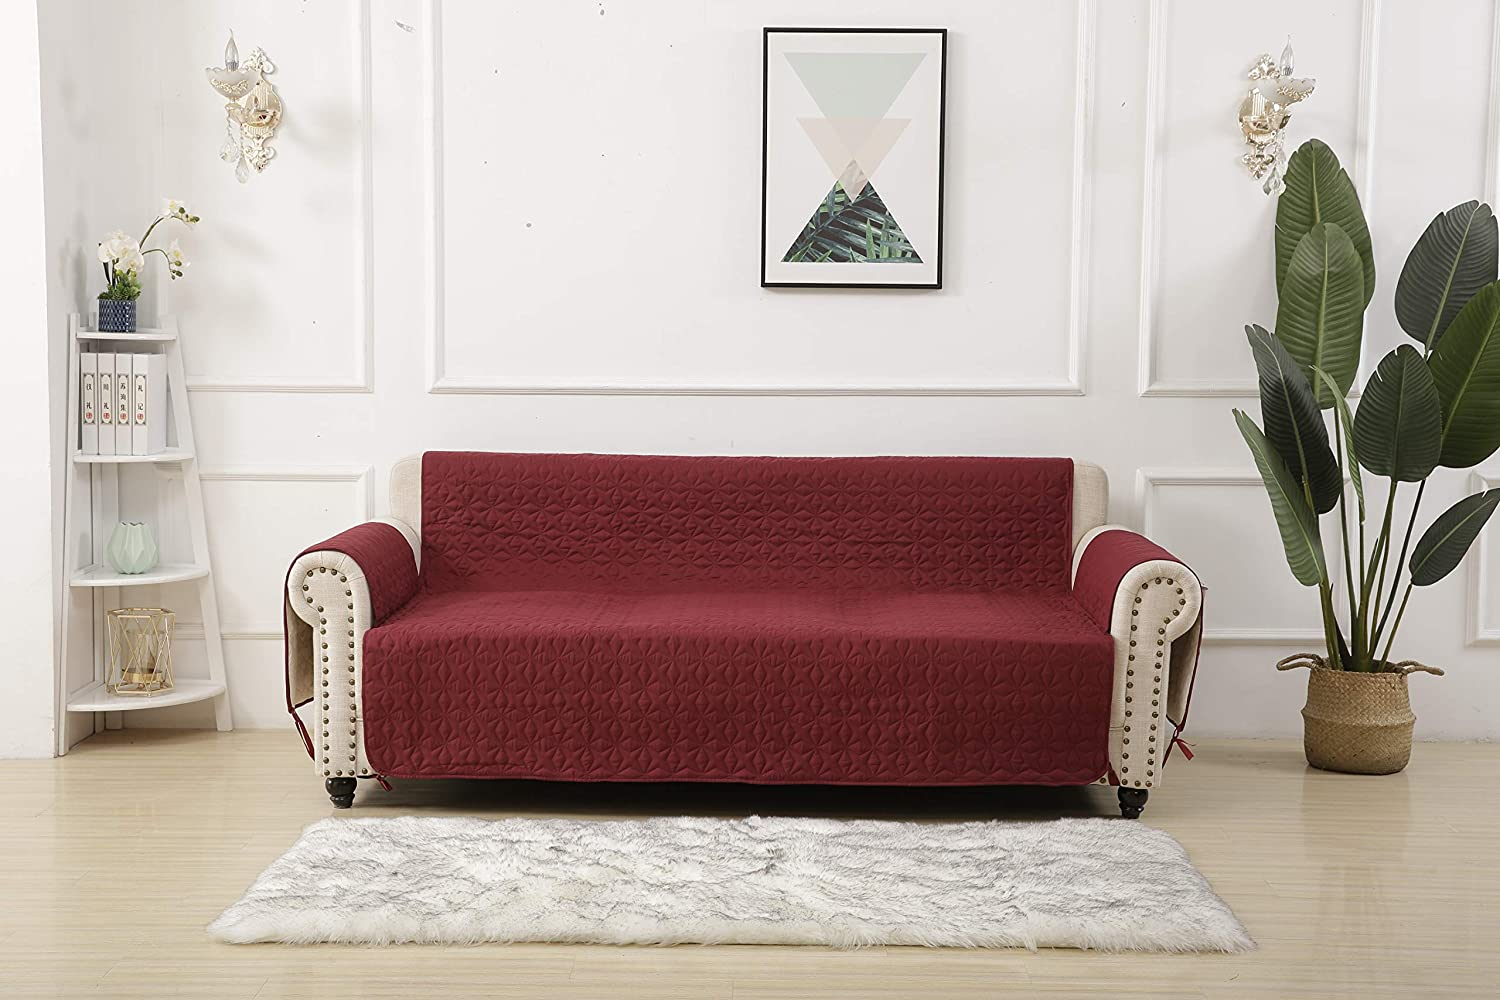 """Sofa Slipcovers 78 Inch - RBSC Home 100% Waterproof Quilted Thick Couch Cover for Dogs, Cats (78"""" Sofa, Burgundy)"""